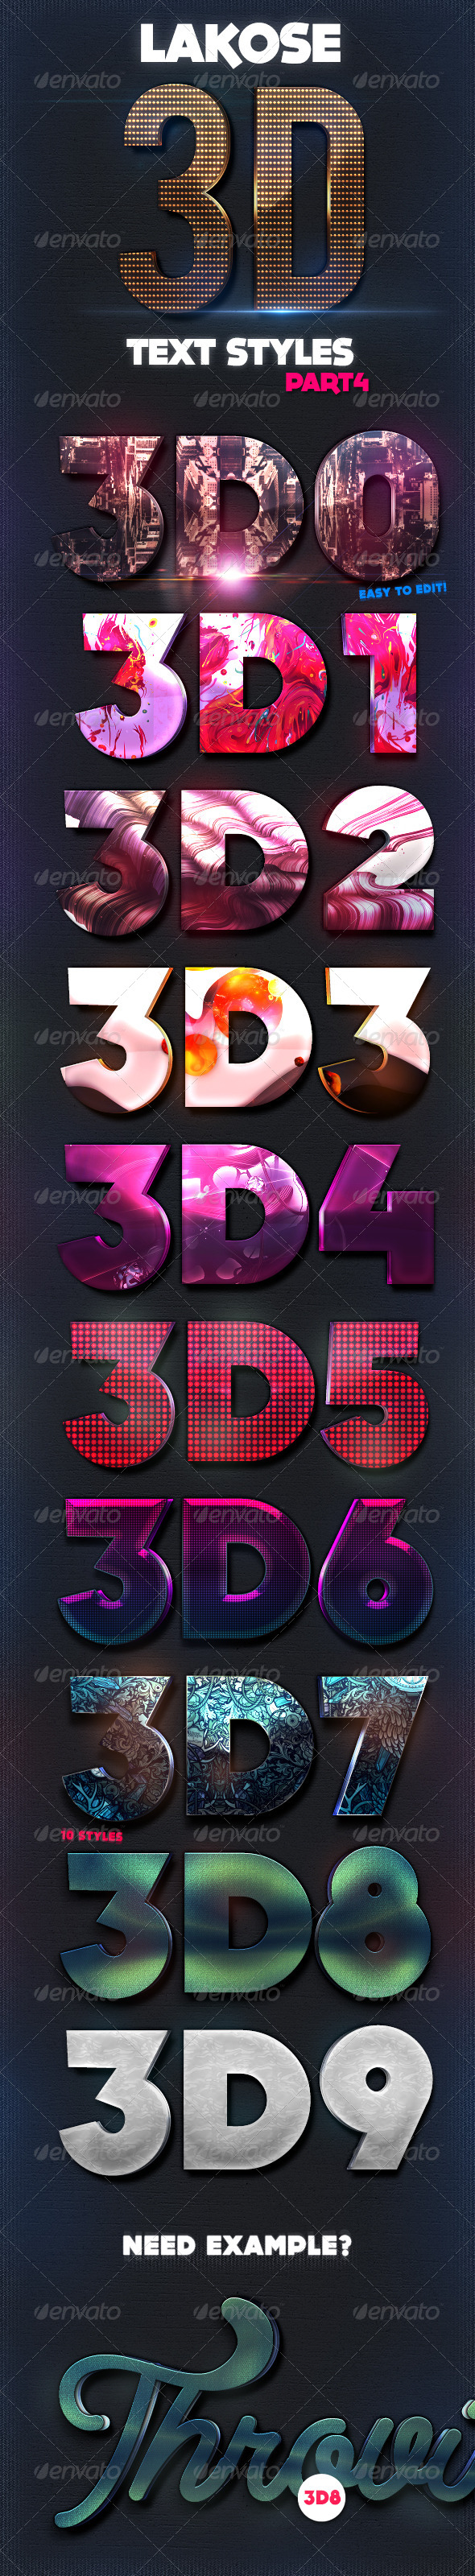 GraphicRiver Lakose 3D Text Styles Part 4 8569088